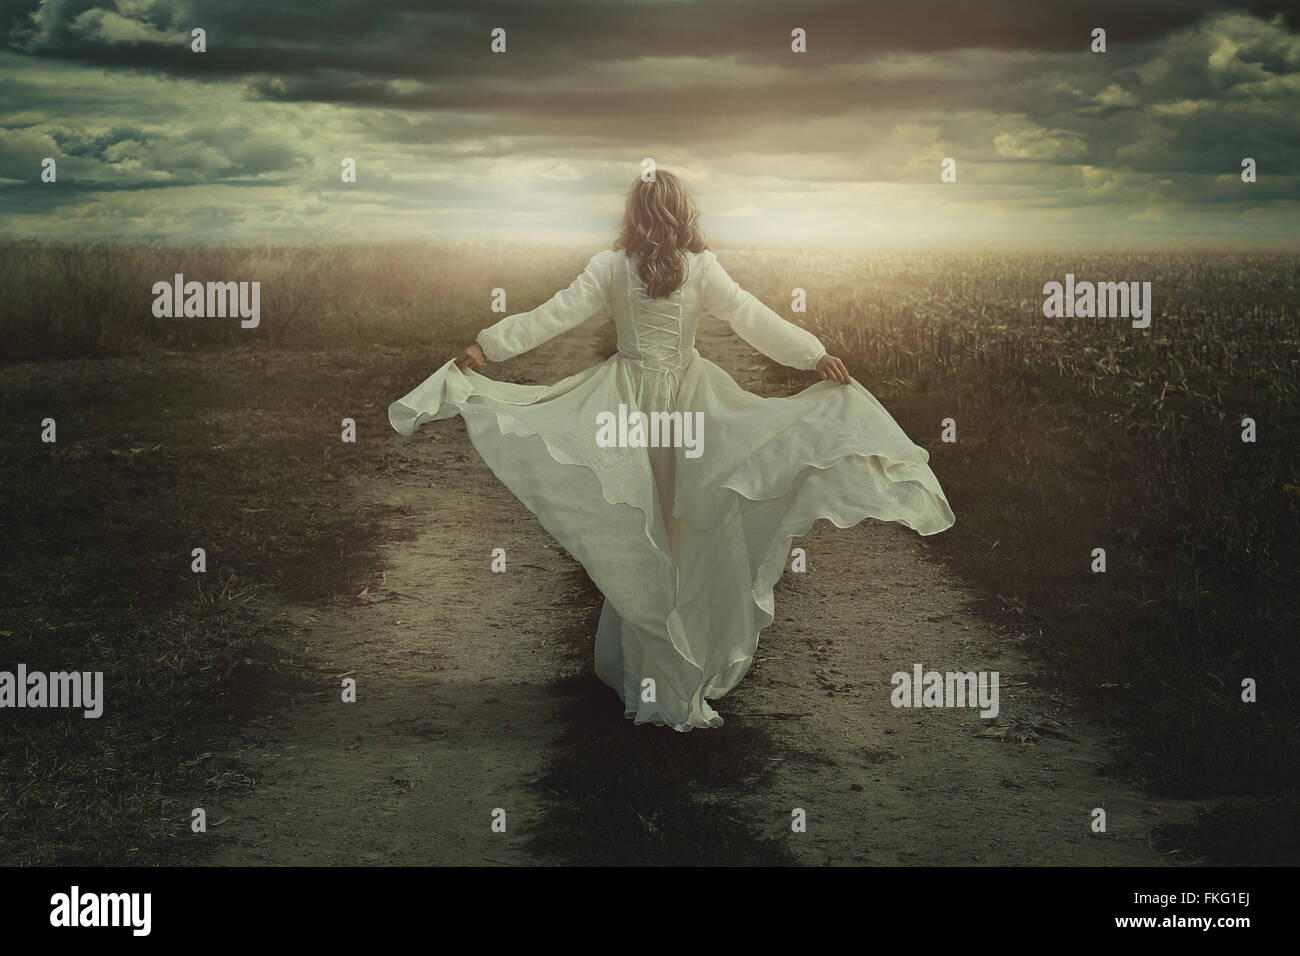 Woman running free in a desolate dark land. Surreal manipulation - Stock Image